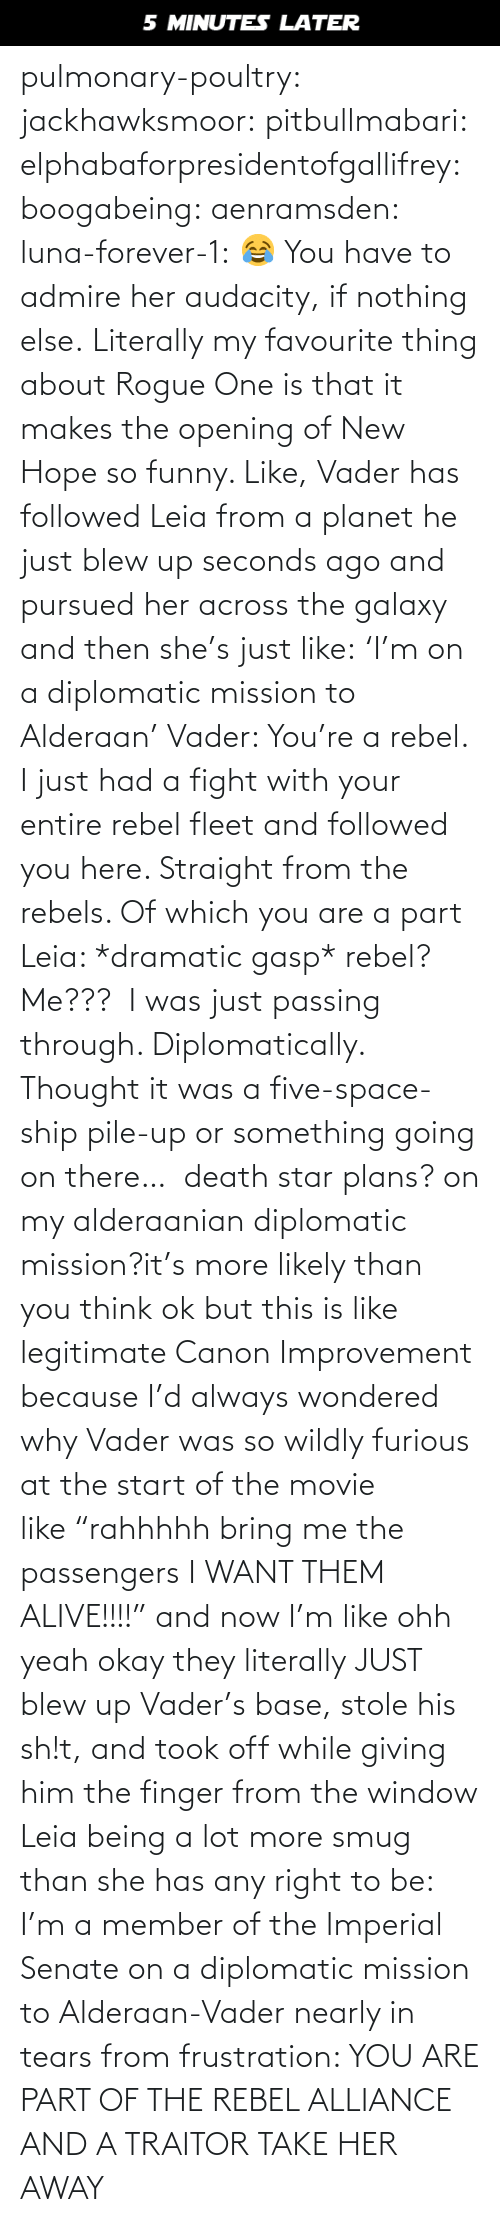 "Death Star: 5 MINUTES LATER pulmonary-poultry:  jackhawksmoor:  pitbullmabari:  elphabaforpresidentofgallifrey:  boogabeing:  aenramsden:  luna-forever-1: 😂 You have to admire her audacity, if nothing else.  Literally my favourite thing about Rogue One is that it makes the opening of New Hope so funny. Like, Vader has followed Leia from a planet he just blew up seconds ago and pursued her across the galaxy and then she's just like: 'I'm on a diplomatic mission to Alderaan' Vader: You're a rebel. I just had a fight with your entire rebel fleet and followed you here. Straight from the rebels. Of which you are a part Leia: *dramatic gasp* rebel? Me???  I was just passing through. Diplomatically. Thought it was a five-space-ship pile-up or something going on there…   death star plans? on my alderaanian diplomatic mission?it's more likely than you think   ok but this is like legitimate Canon Improvement because I'd always wondered why Vader was so wildly furious at the start of the movie like ""rahhhhh bring me the passengers I WANT THEM ALIVE!!!!"" and now I'm like ohh yeah okay they literally JUST blew up Vader's base, stole his sh!t, and took off while giving him the finger from the window    Leia being a lot more smug than she has any right to be: I'm a member of the Imperial Senate on a diplomatic mission to Alderaan-Vader nearly in tears from frustration: YOU ARE PART OF THE REBEL ALLIANCE AND A TRAITOR TAKE HER AWAY"